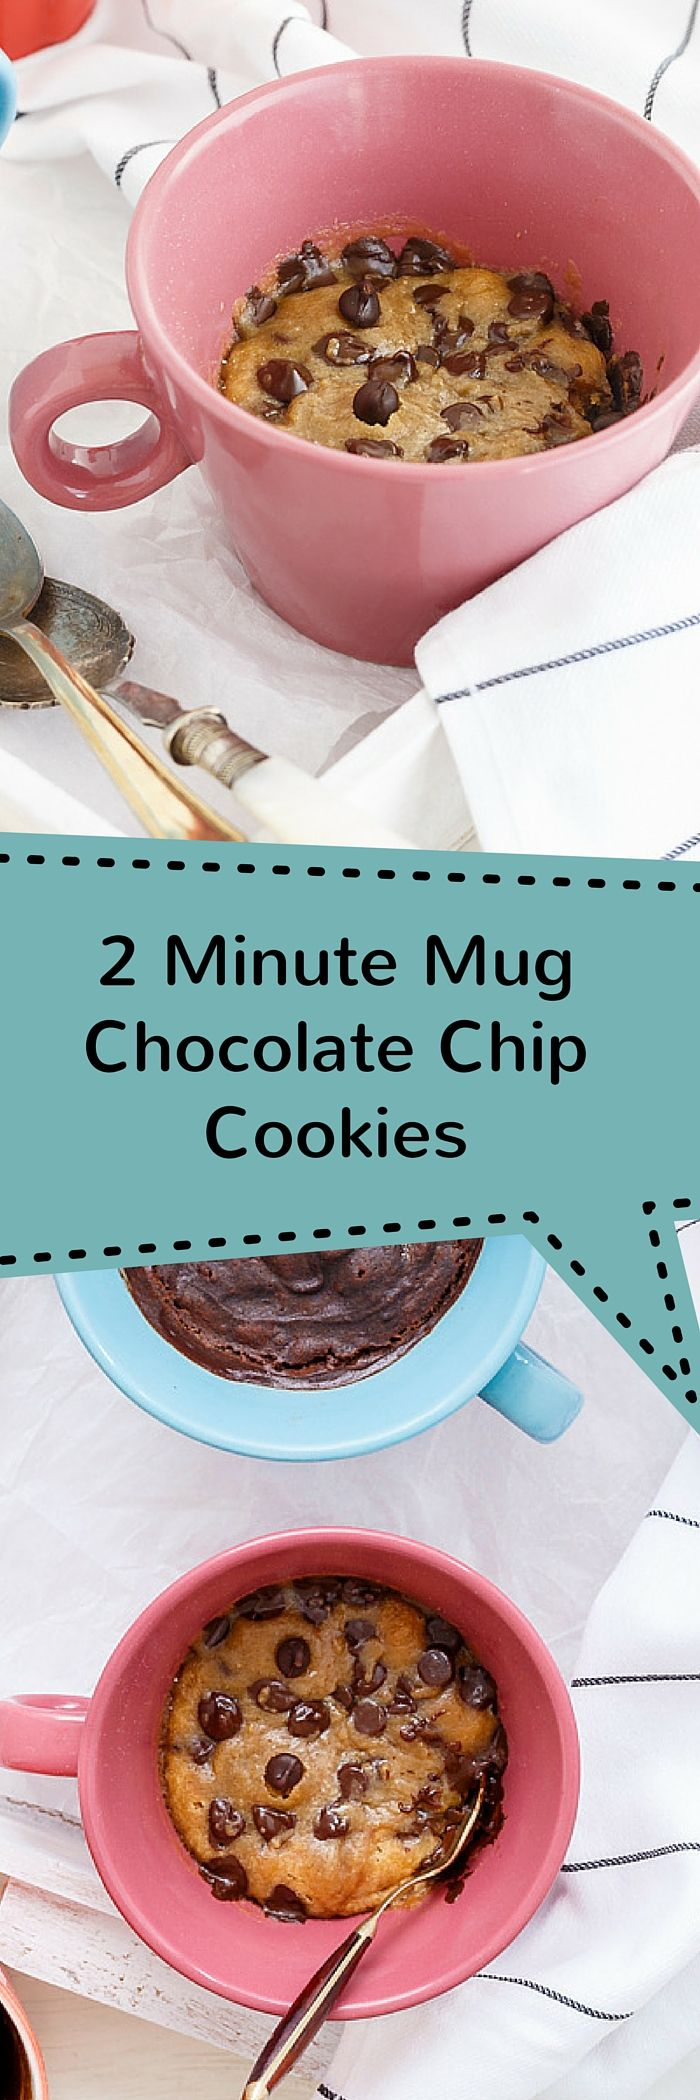 Best 25+ 2 minute cookie ideas on Pinterest | Homemade microwave ...